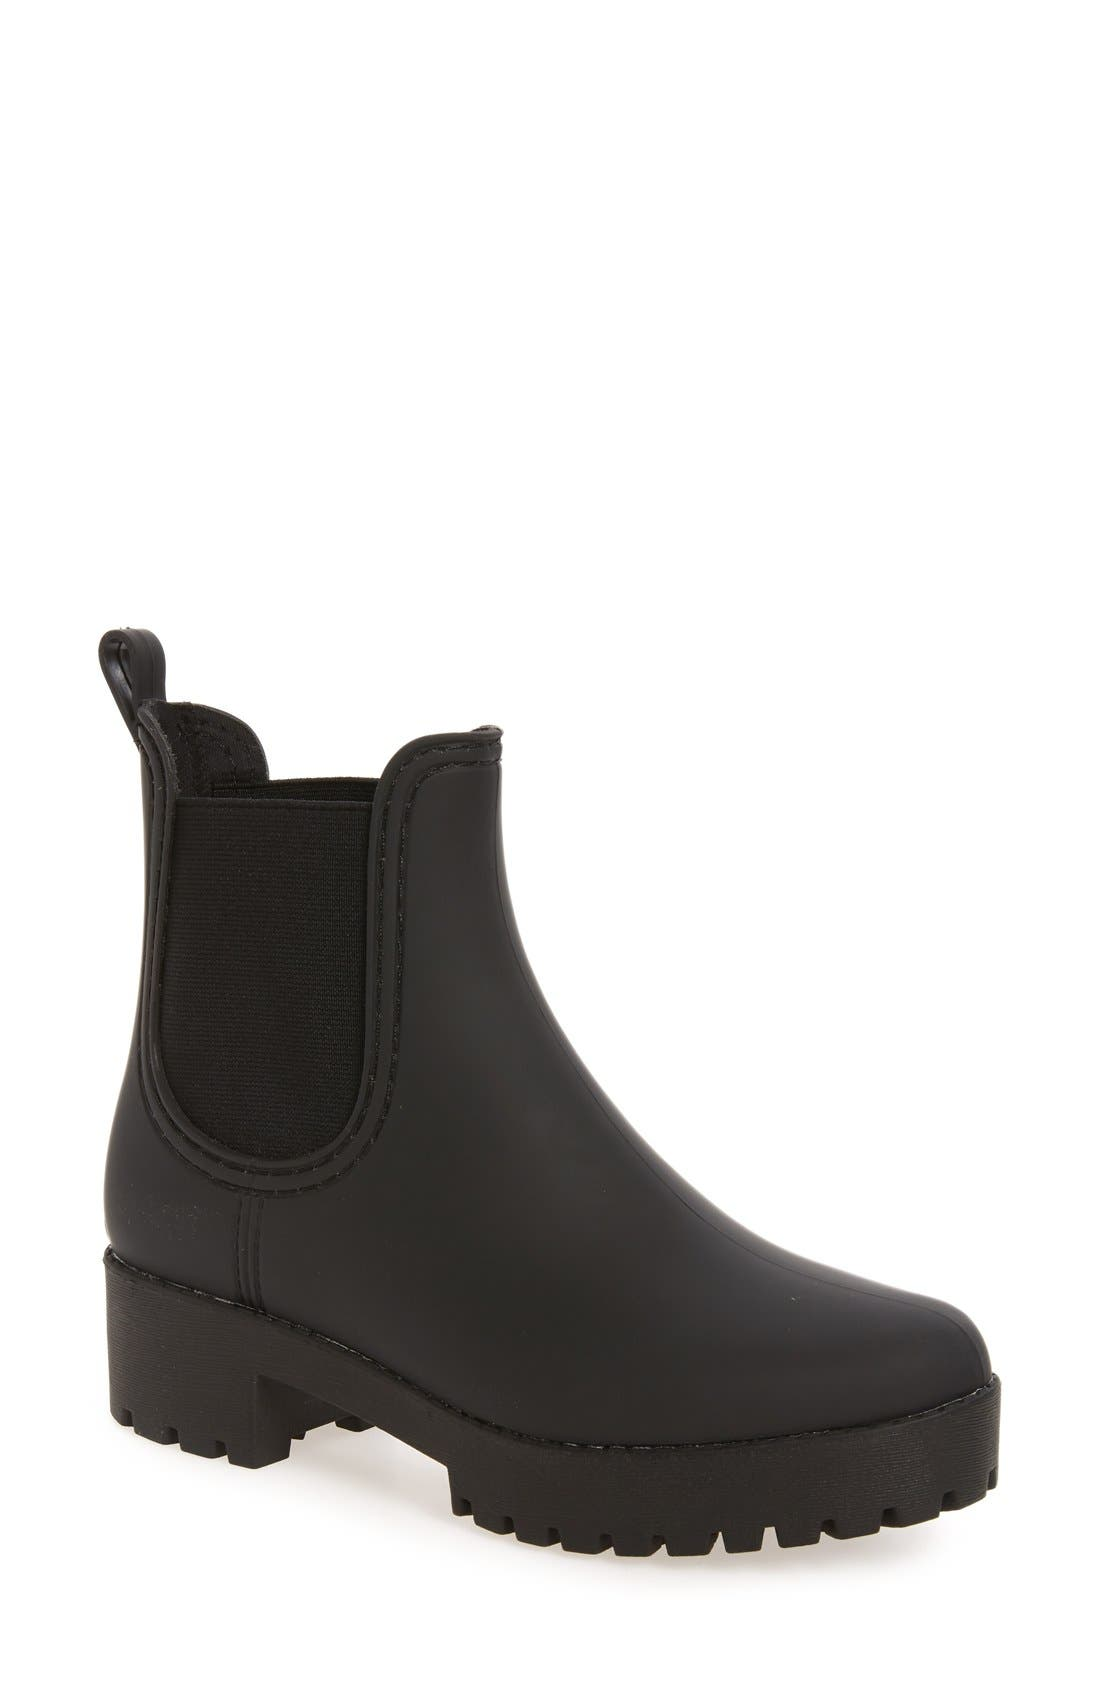 Cloudy Chelsea Rain Boot,                         Main,                         color, Black Matte Black